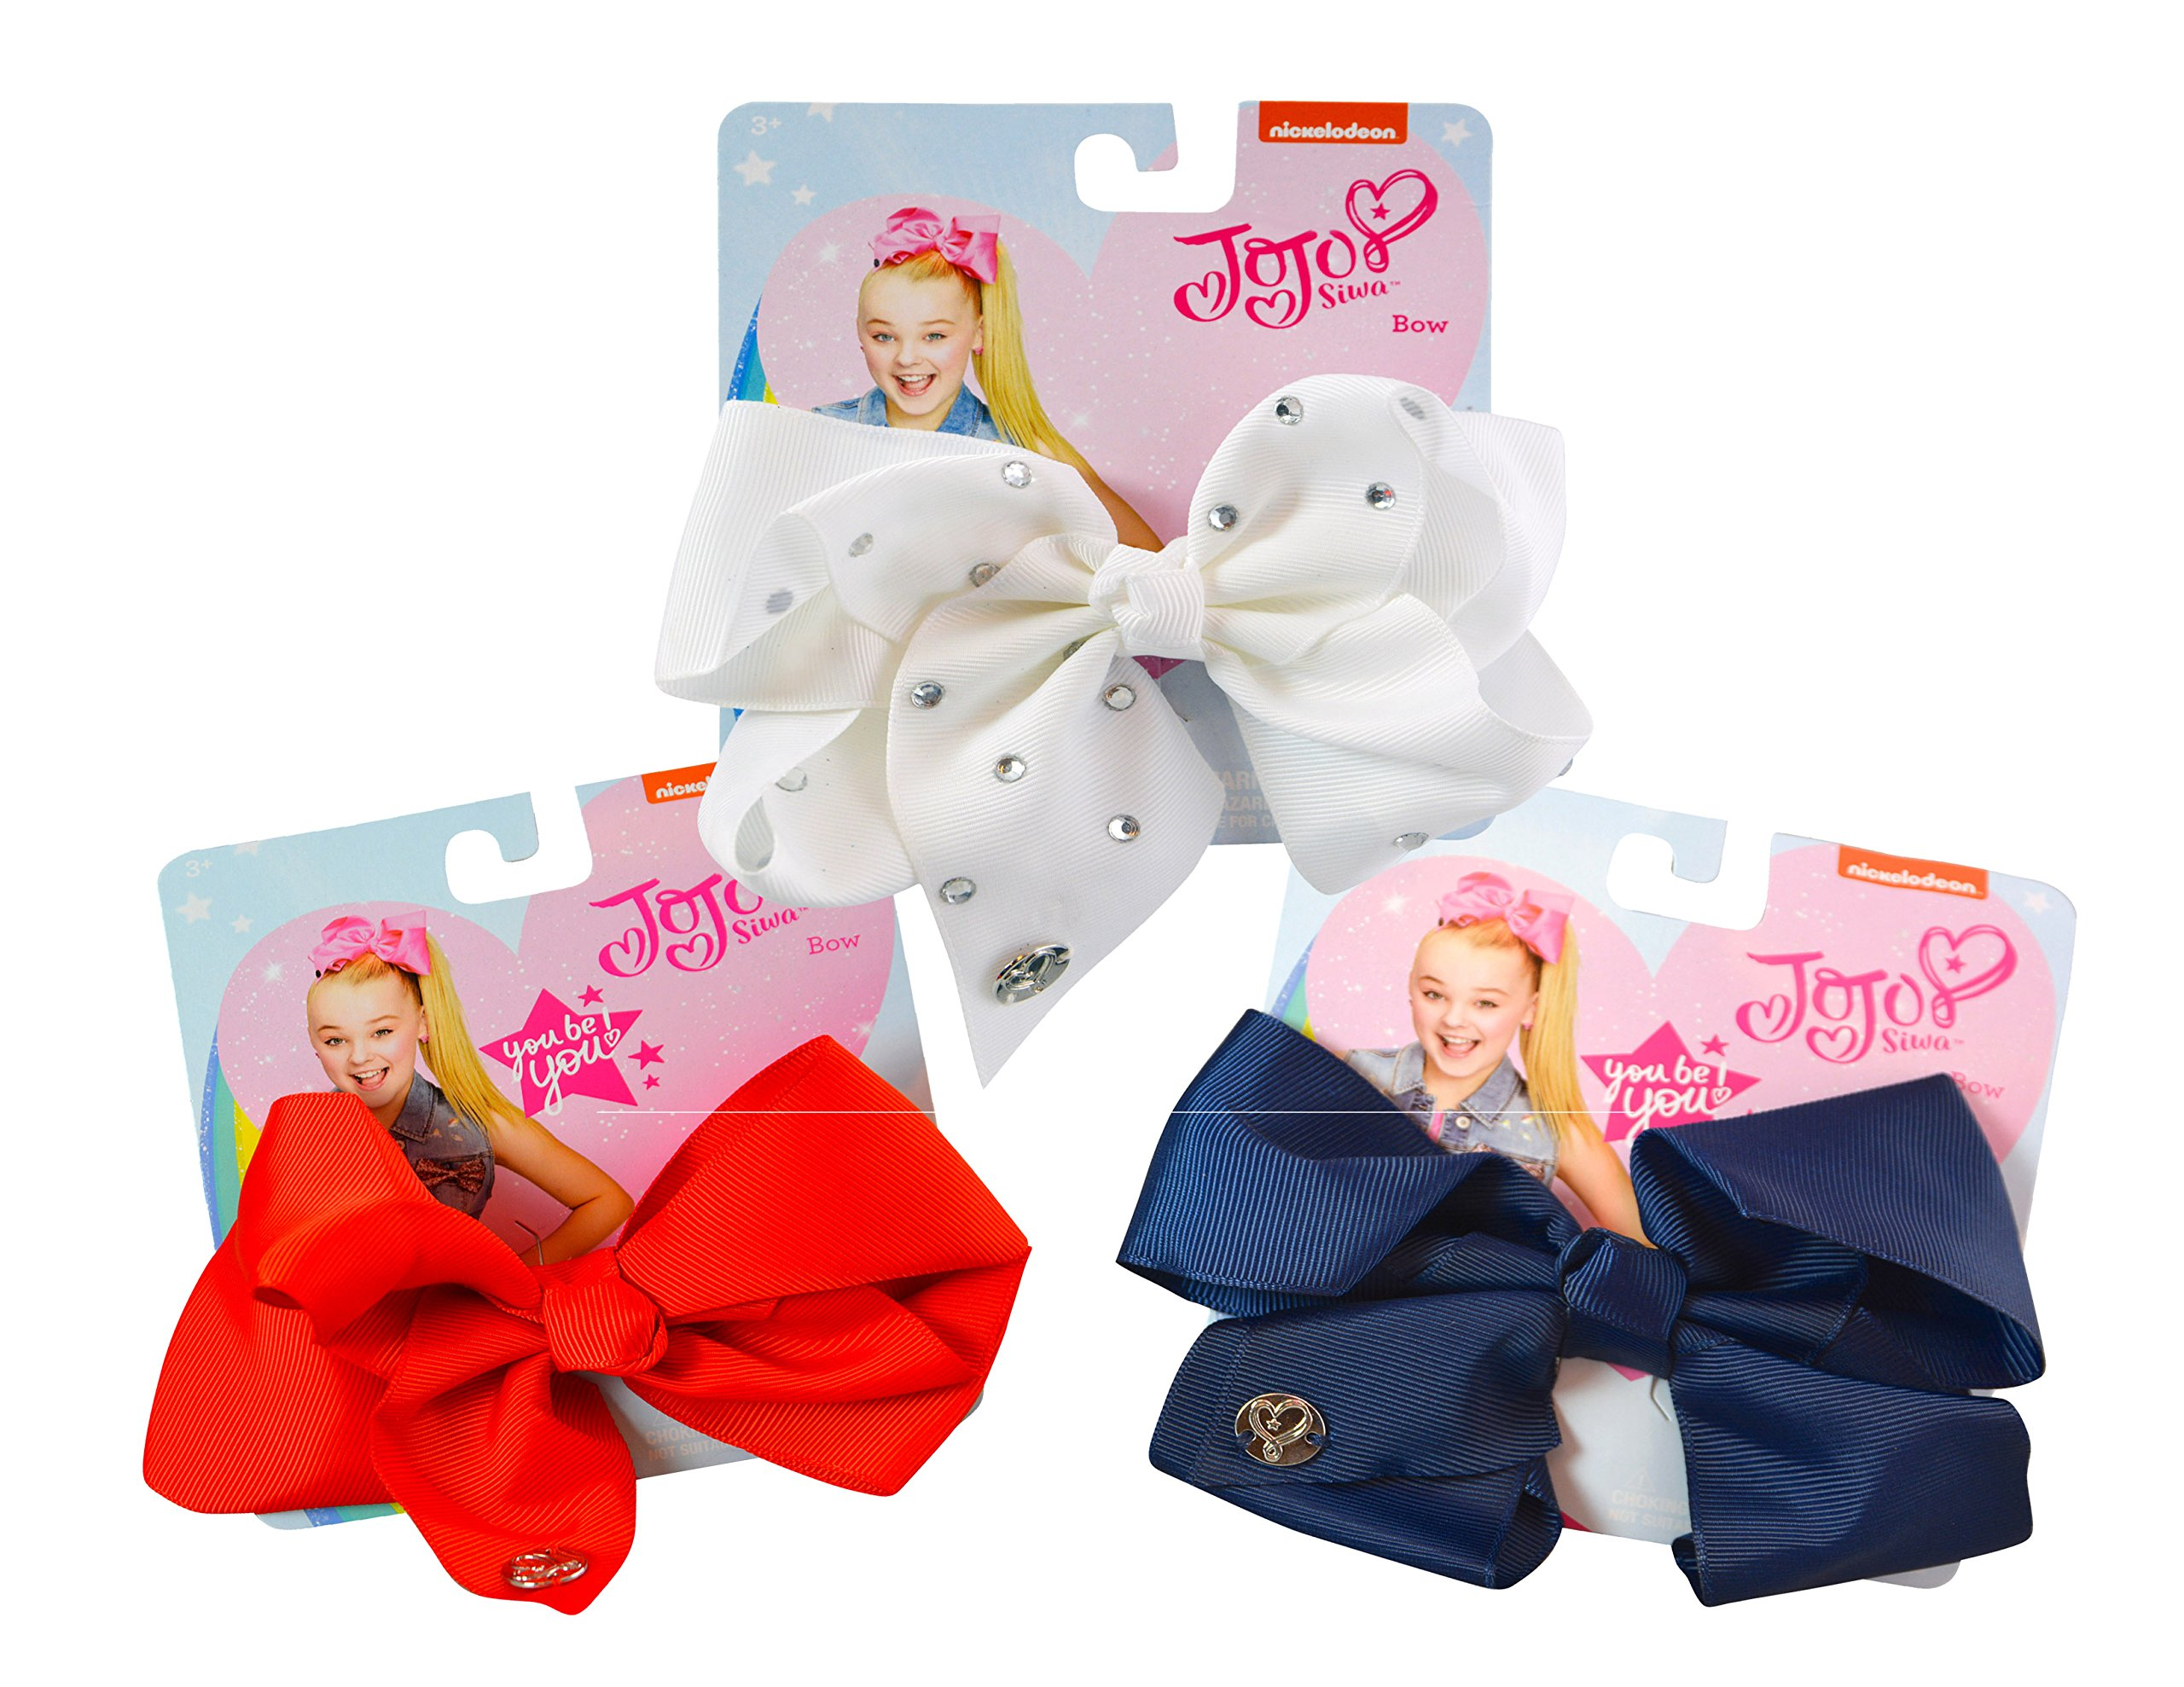 3-PACK, JoJo Siwa Patriotic Glam Signature Hair Bows Collection- White Rhinestones, Red & Navy Blue